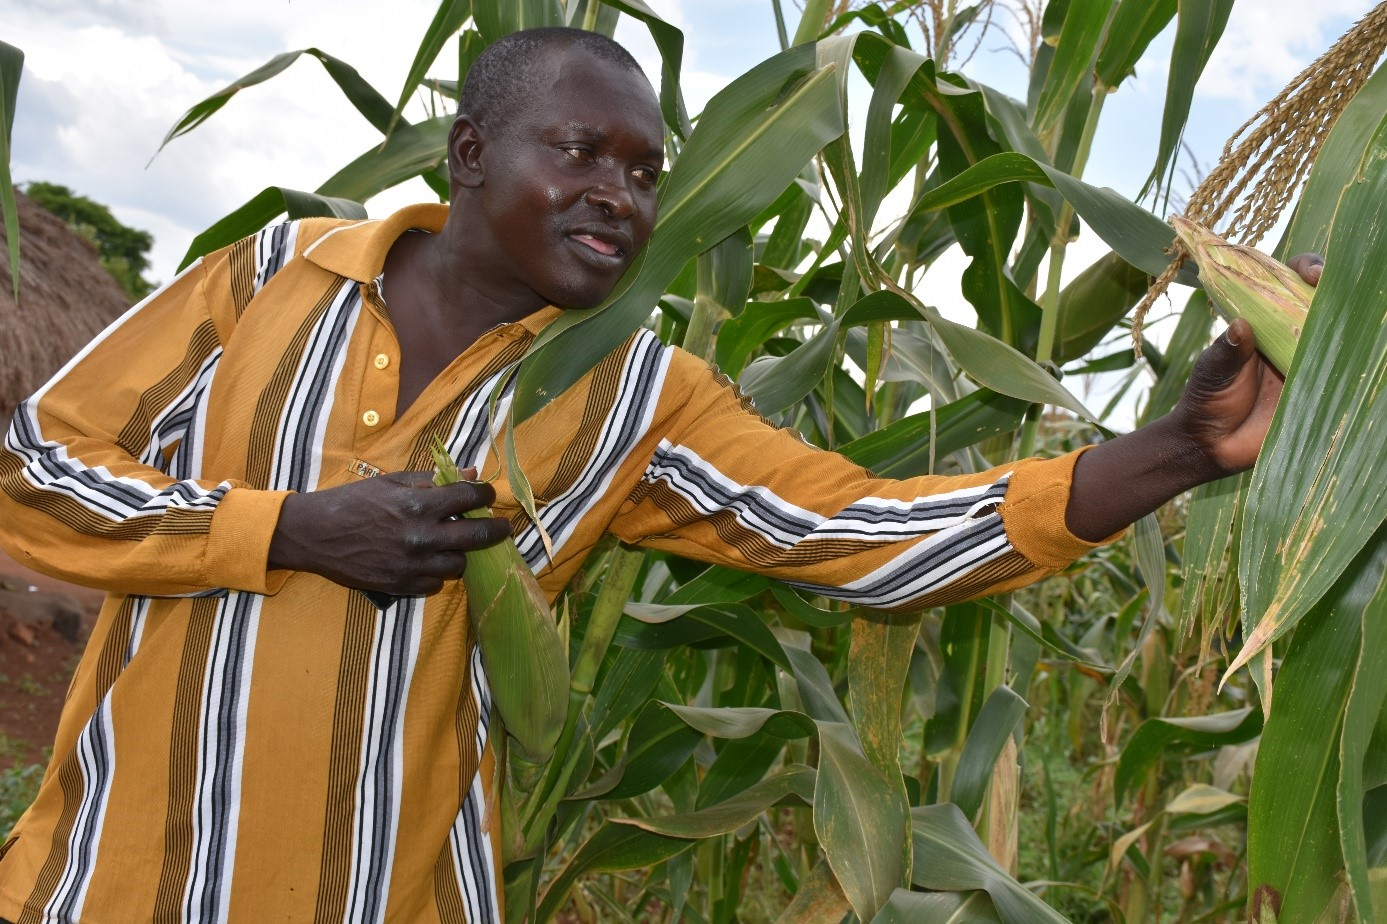 Olum looks at the WE2115 variety that has transformed his microfinance business. B.Wawa/CIMMYT